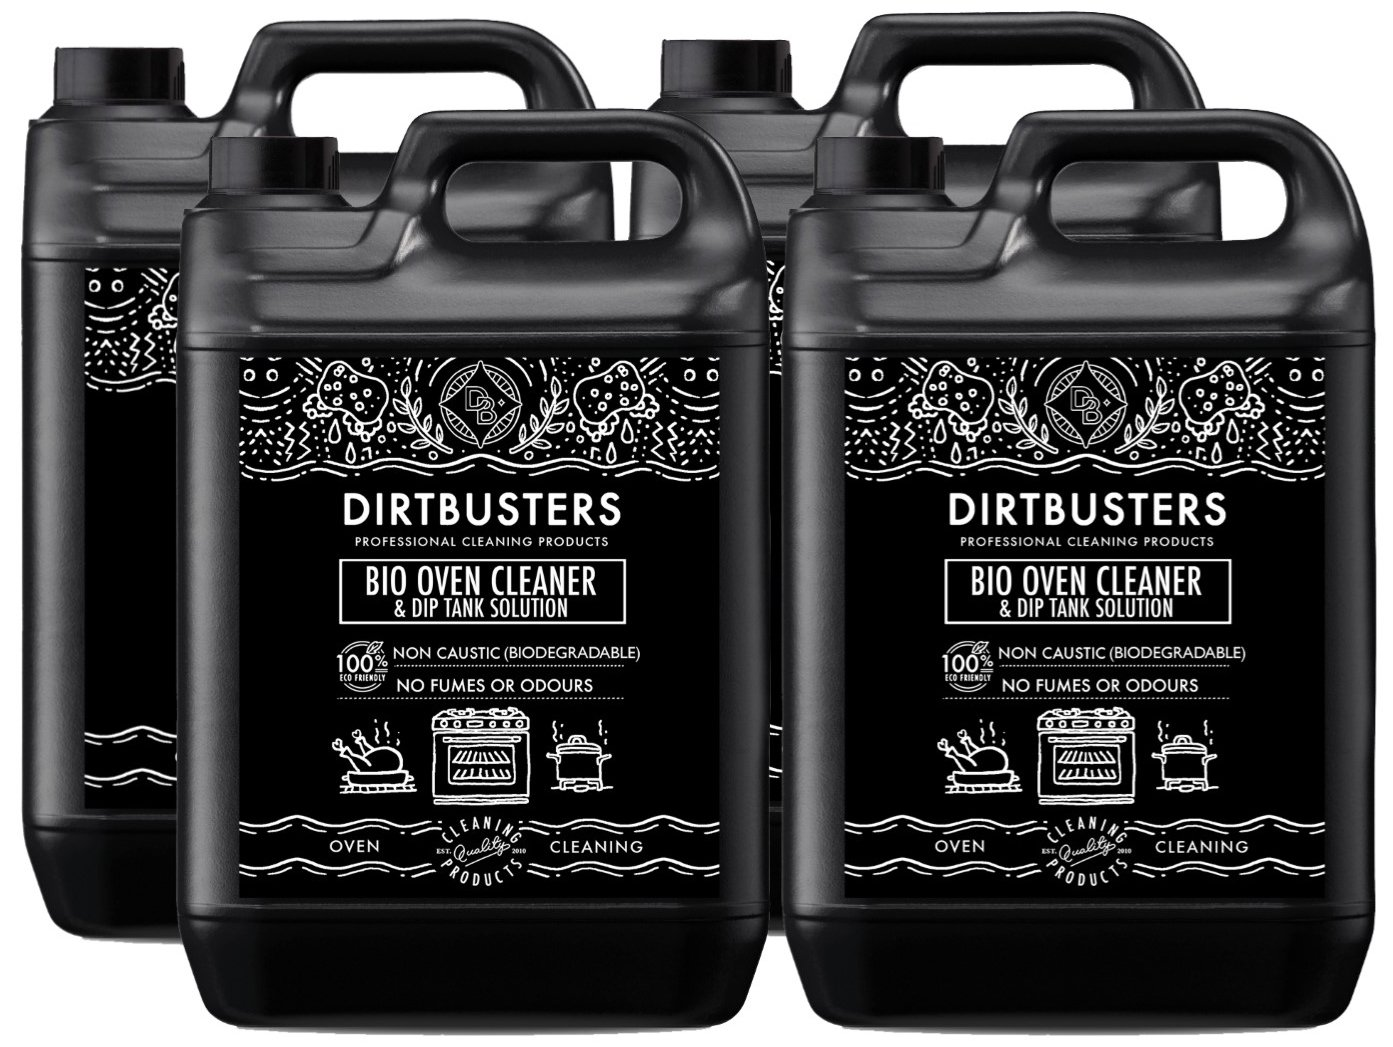 Dirtbusters Bio Oven Cleaner and dip tank solution Concentrate 4 X 5 Litres As Used By Oven Cleaning Companies Professional formula non caustic safe but powerful bio degradable, Eco Friendly